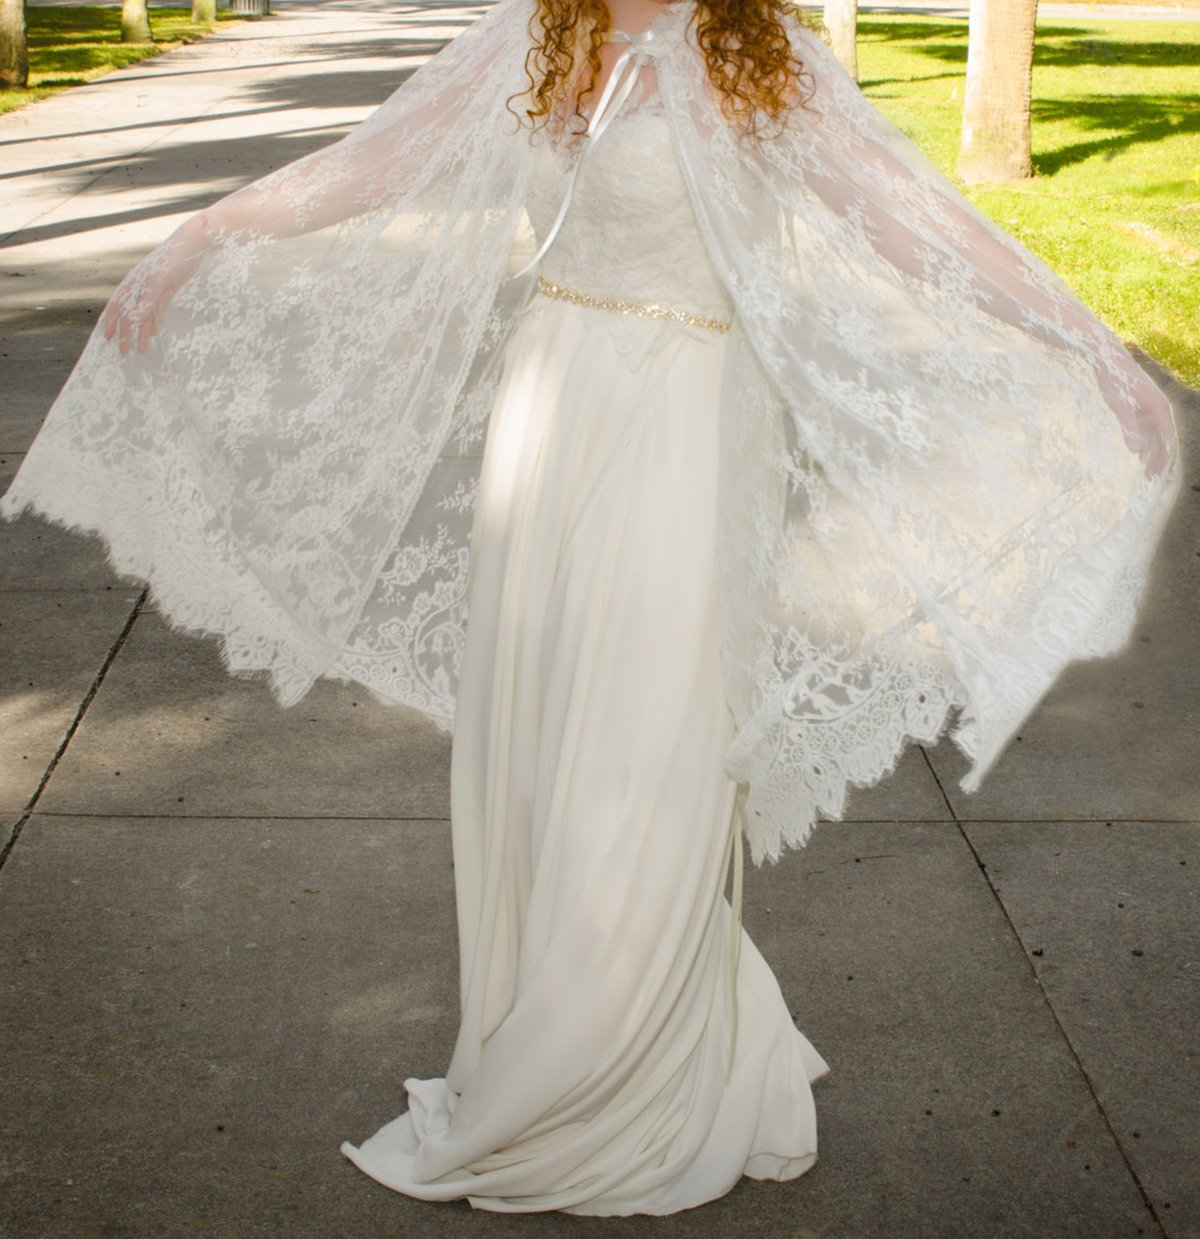 YuRong Long Bridal Shawls Wrap Lace Applique Scarf Capes Lace Cover Up C04 (Ivory) by YuRong (Image #5)